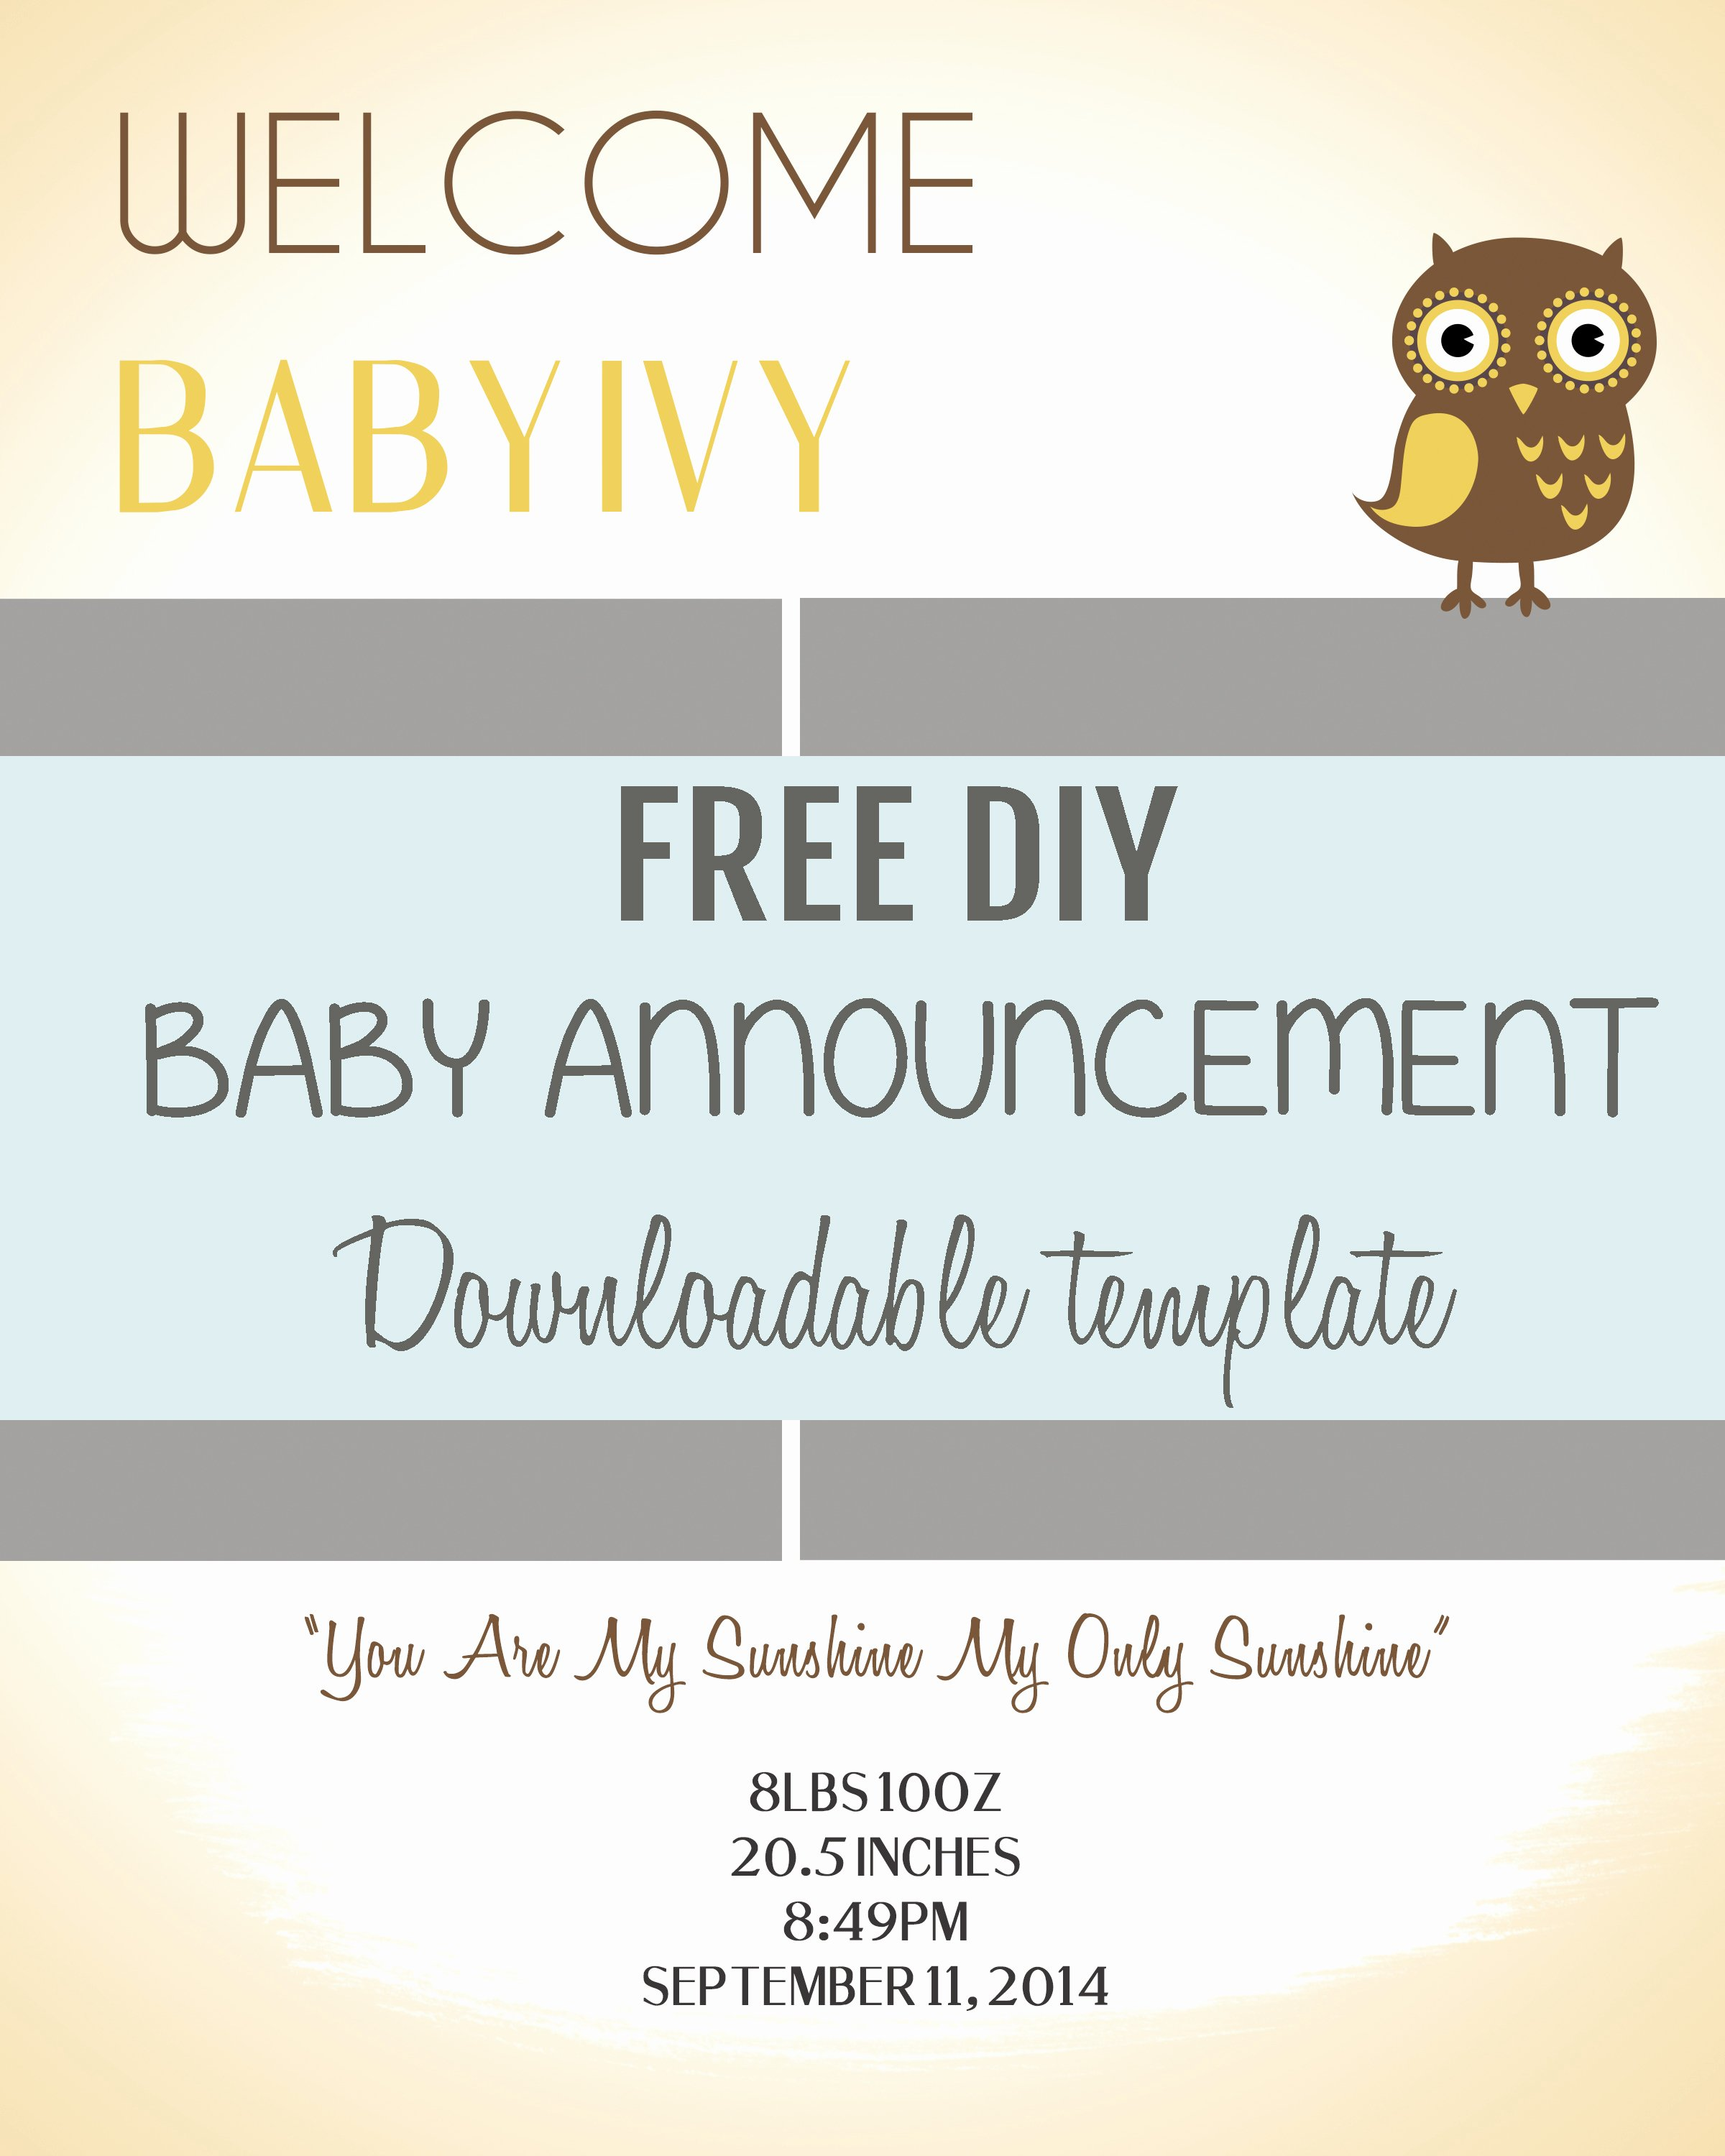 Free Pregnancy Announcement Template Elegant Diy Baby Announcement Template Free Psd Download